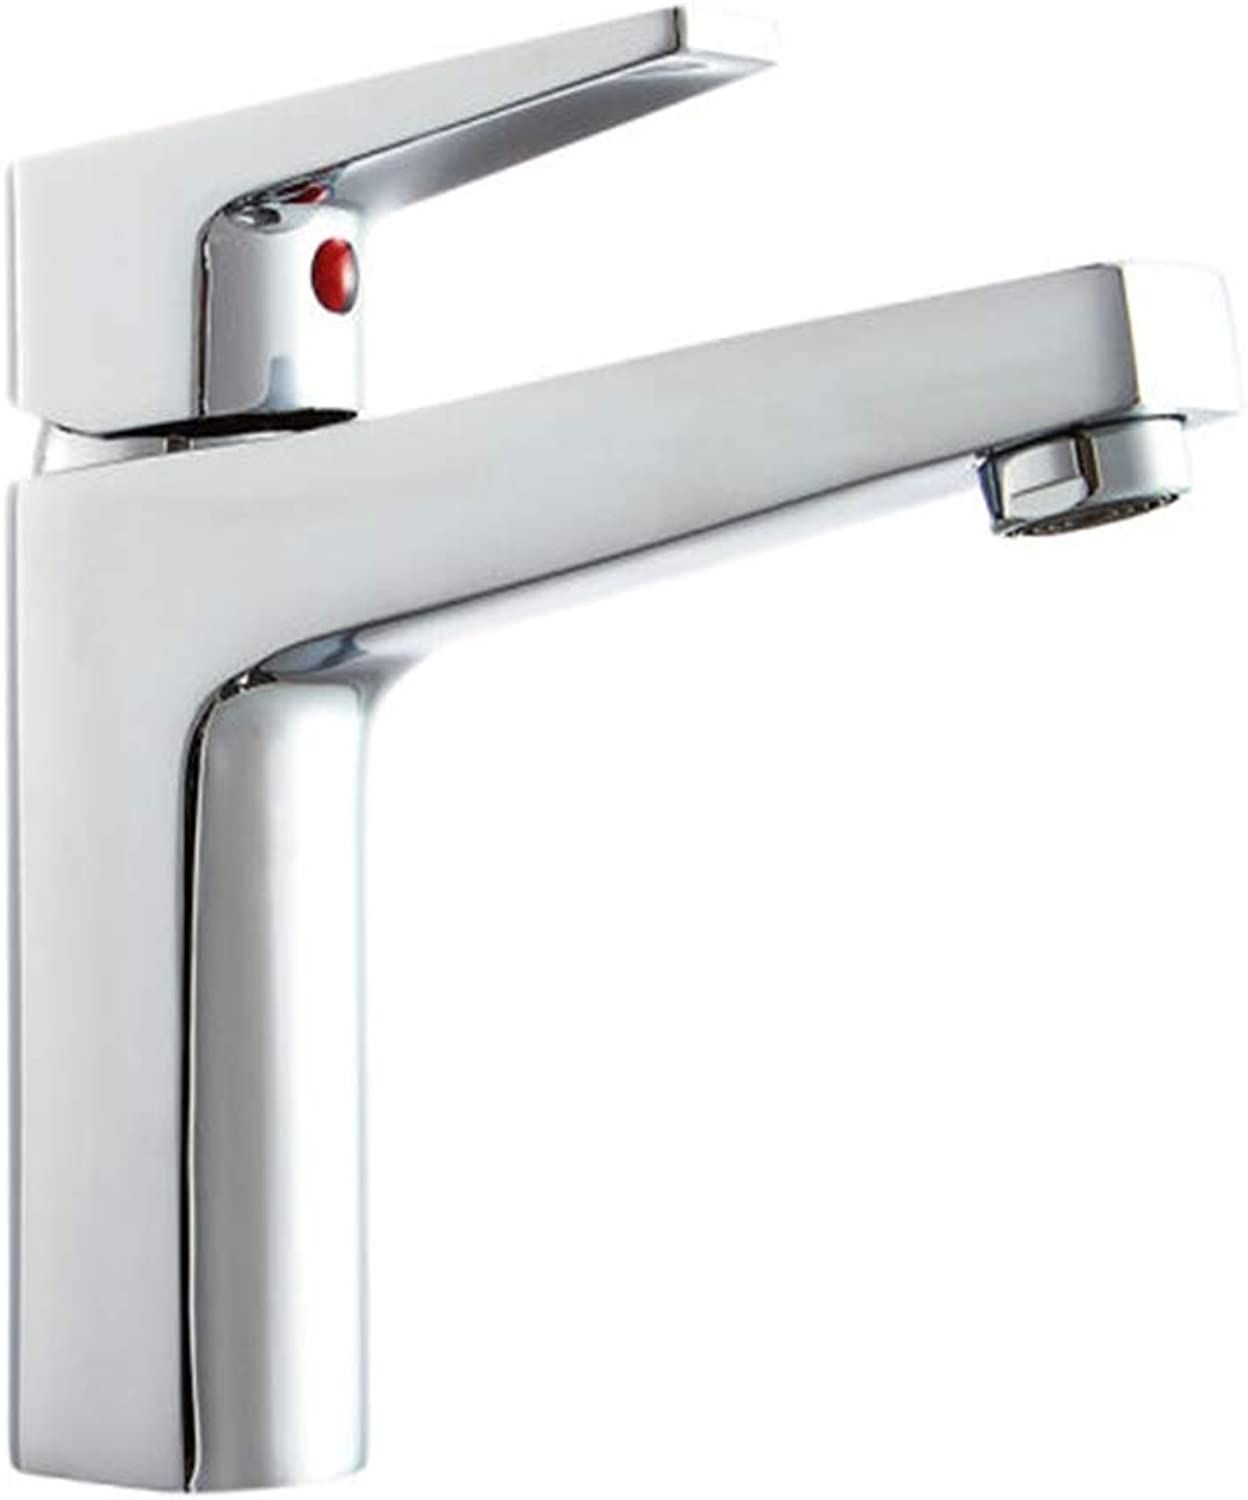 Kitchen Faucet Tapstainless Steelkitchen Faucet Probathroom Hardware Copper Hot and Cold Basin Faucet Washbasin Faucet